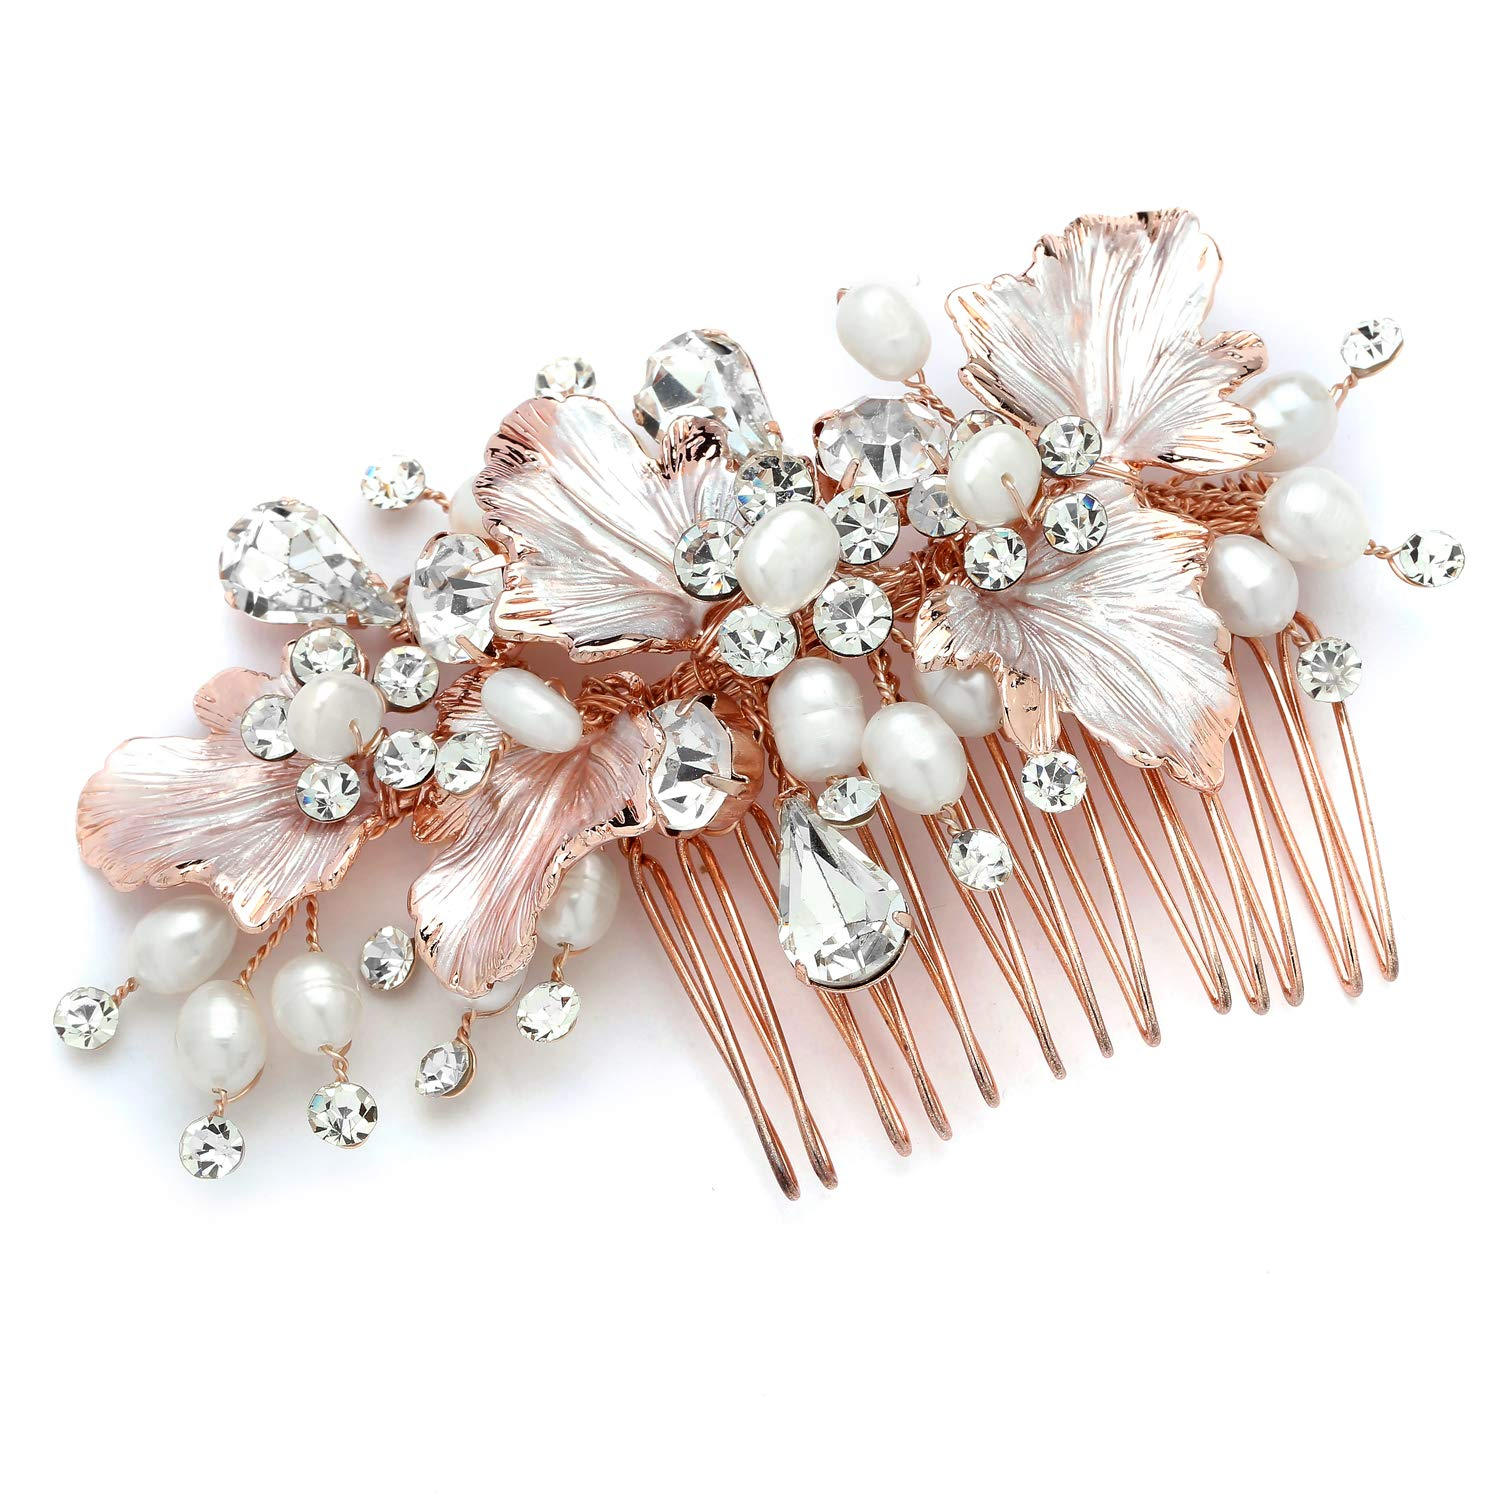 Mariell Couture Rose Gold Bridal Hair Comb Headpiece - Hand Painted Leaves, Freshwater Pearls & Crystals